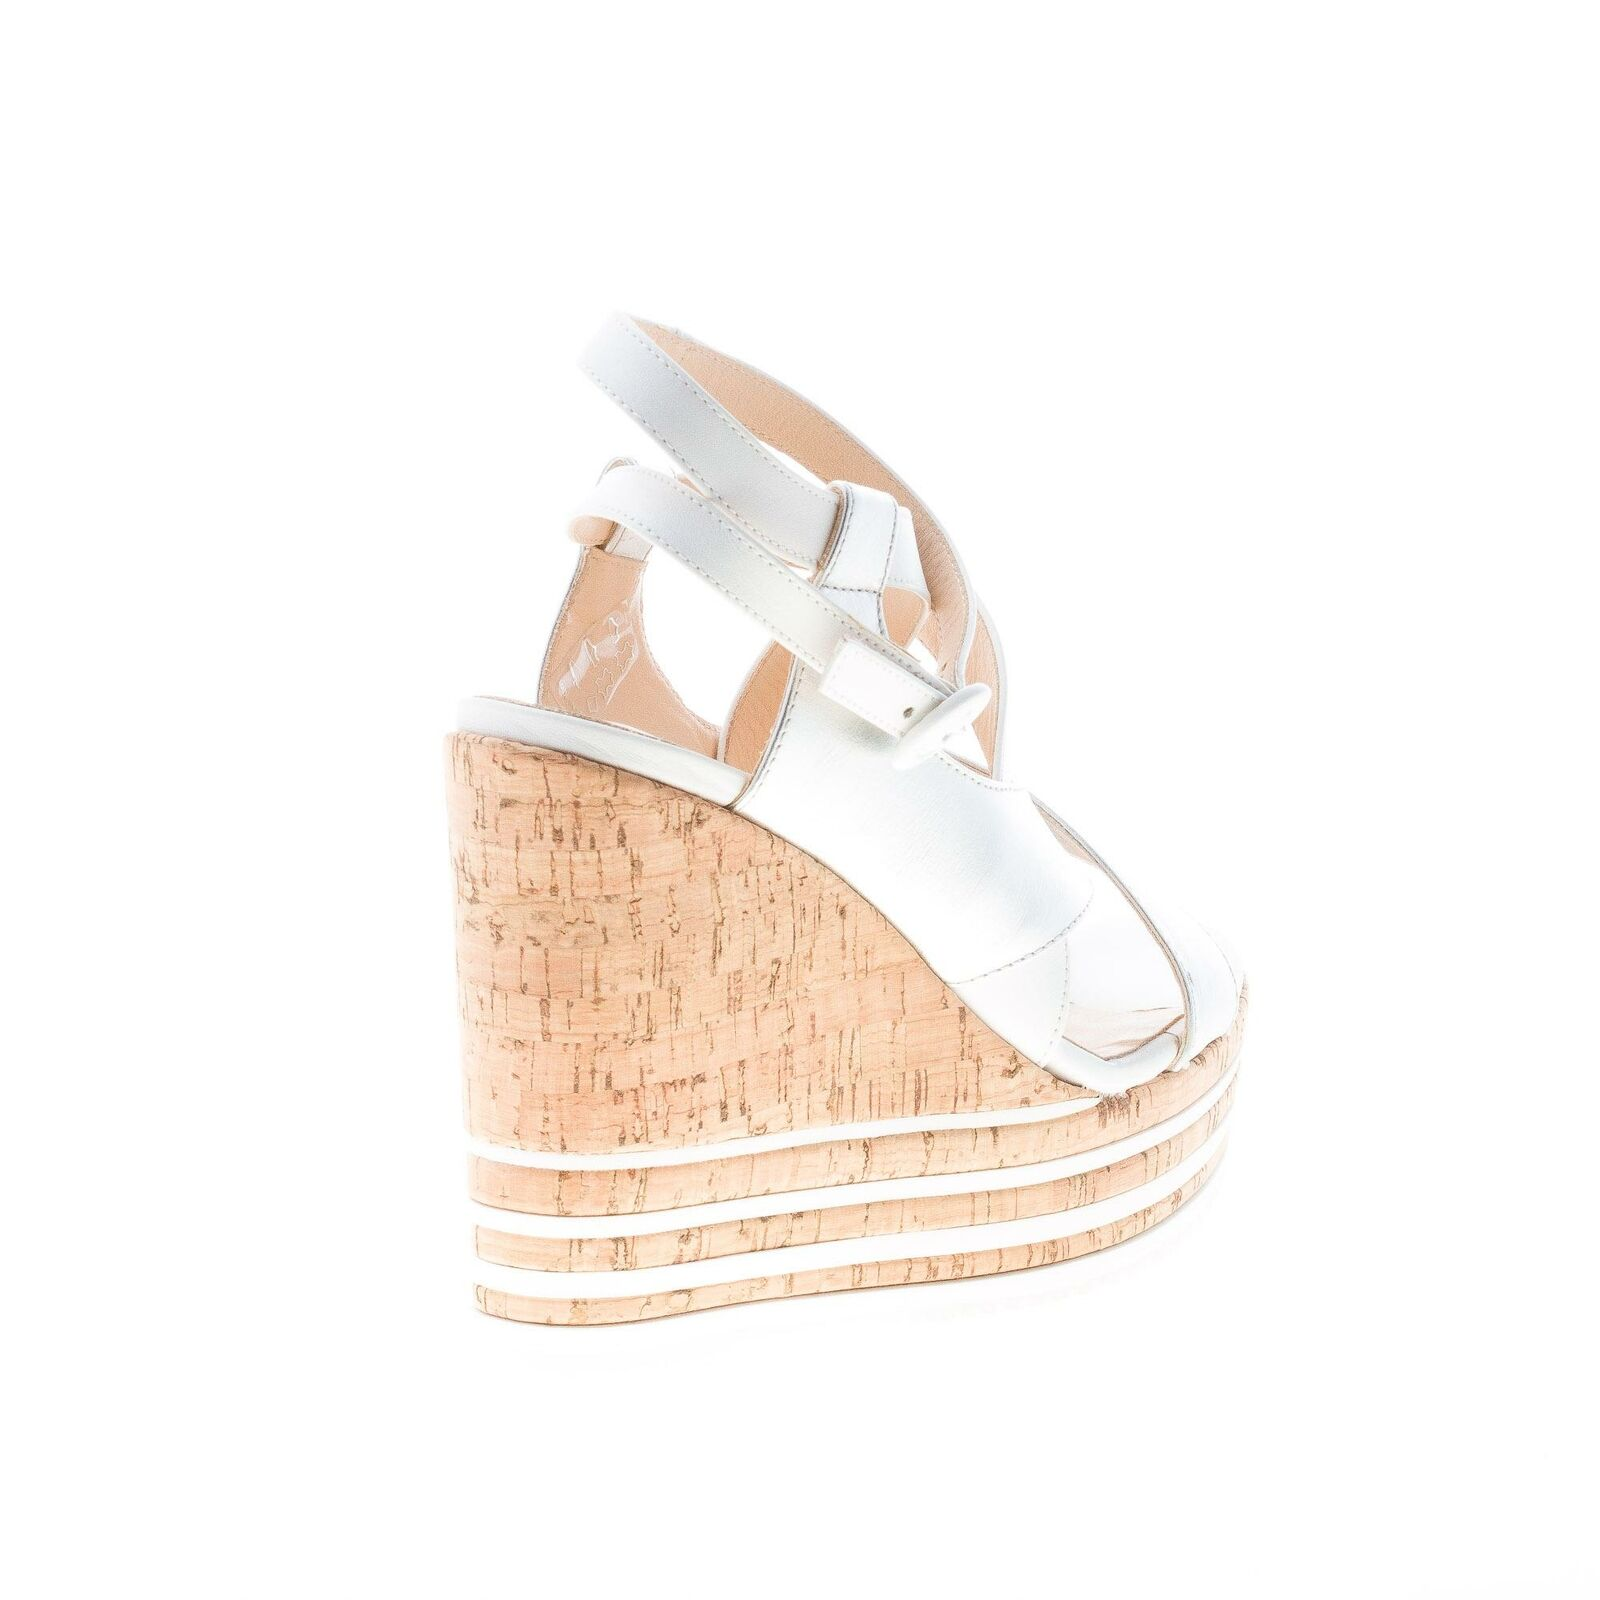 HOGAN femmes chaussures Wedge sandal front crossed crossed crossed argent and blanc leather straps 80b7eb